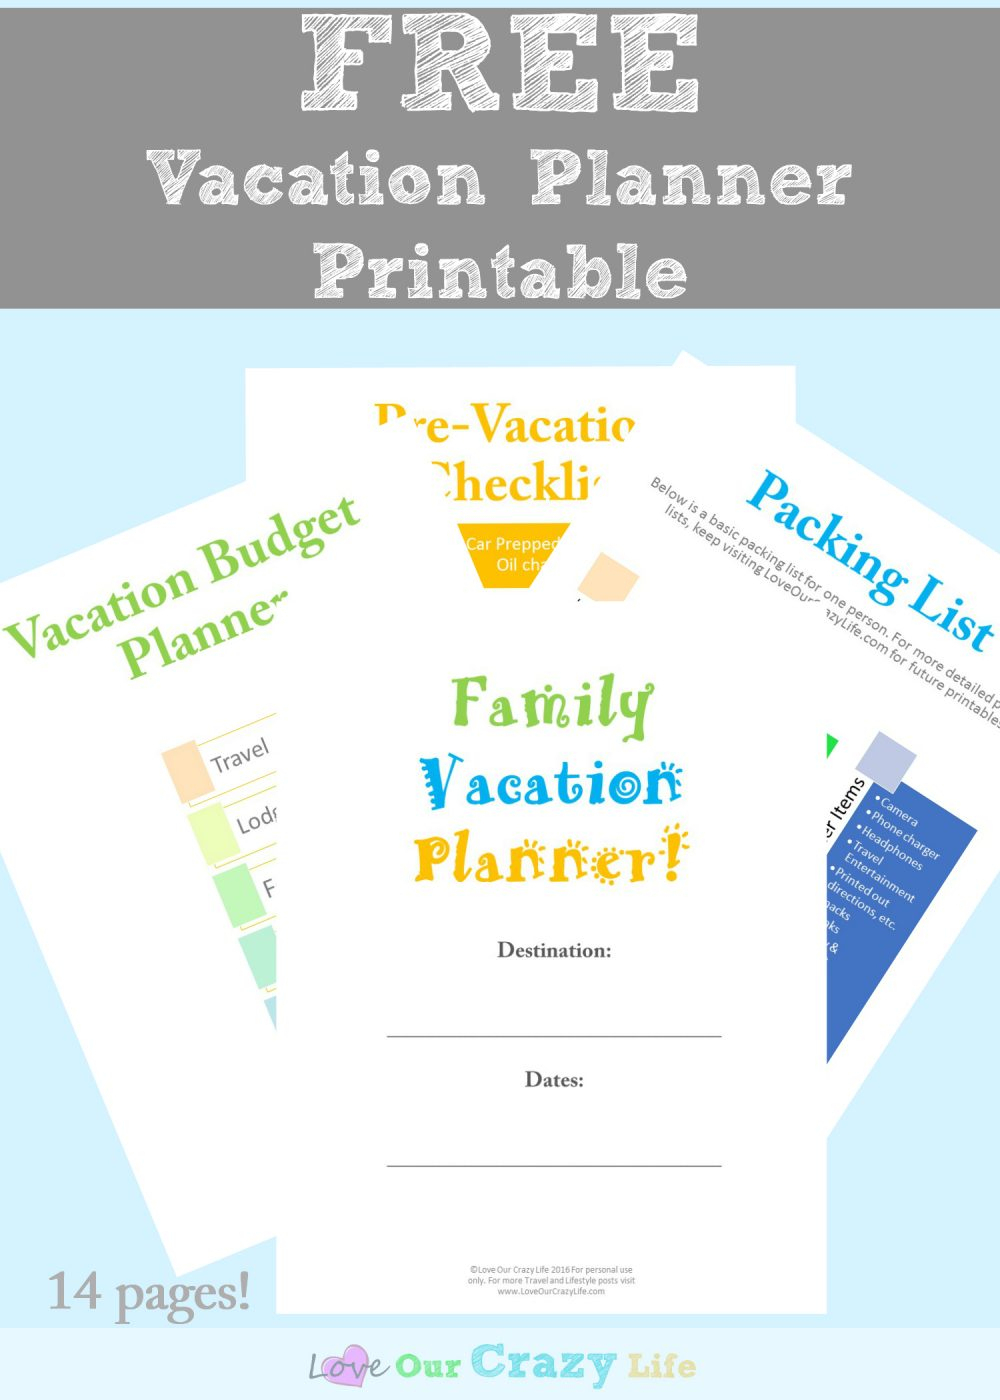 Family Vacation Planning Tips (Free Planner) | This Crazy Adventure - Free Printable Trip Planner